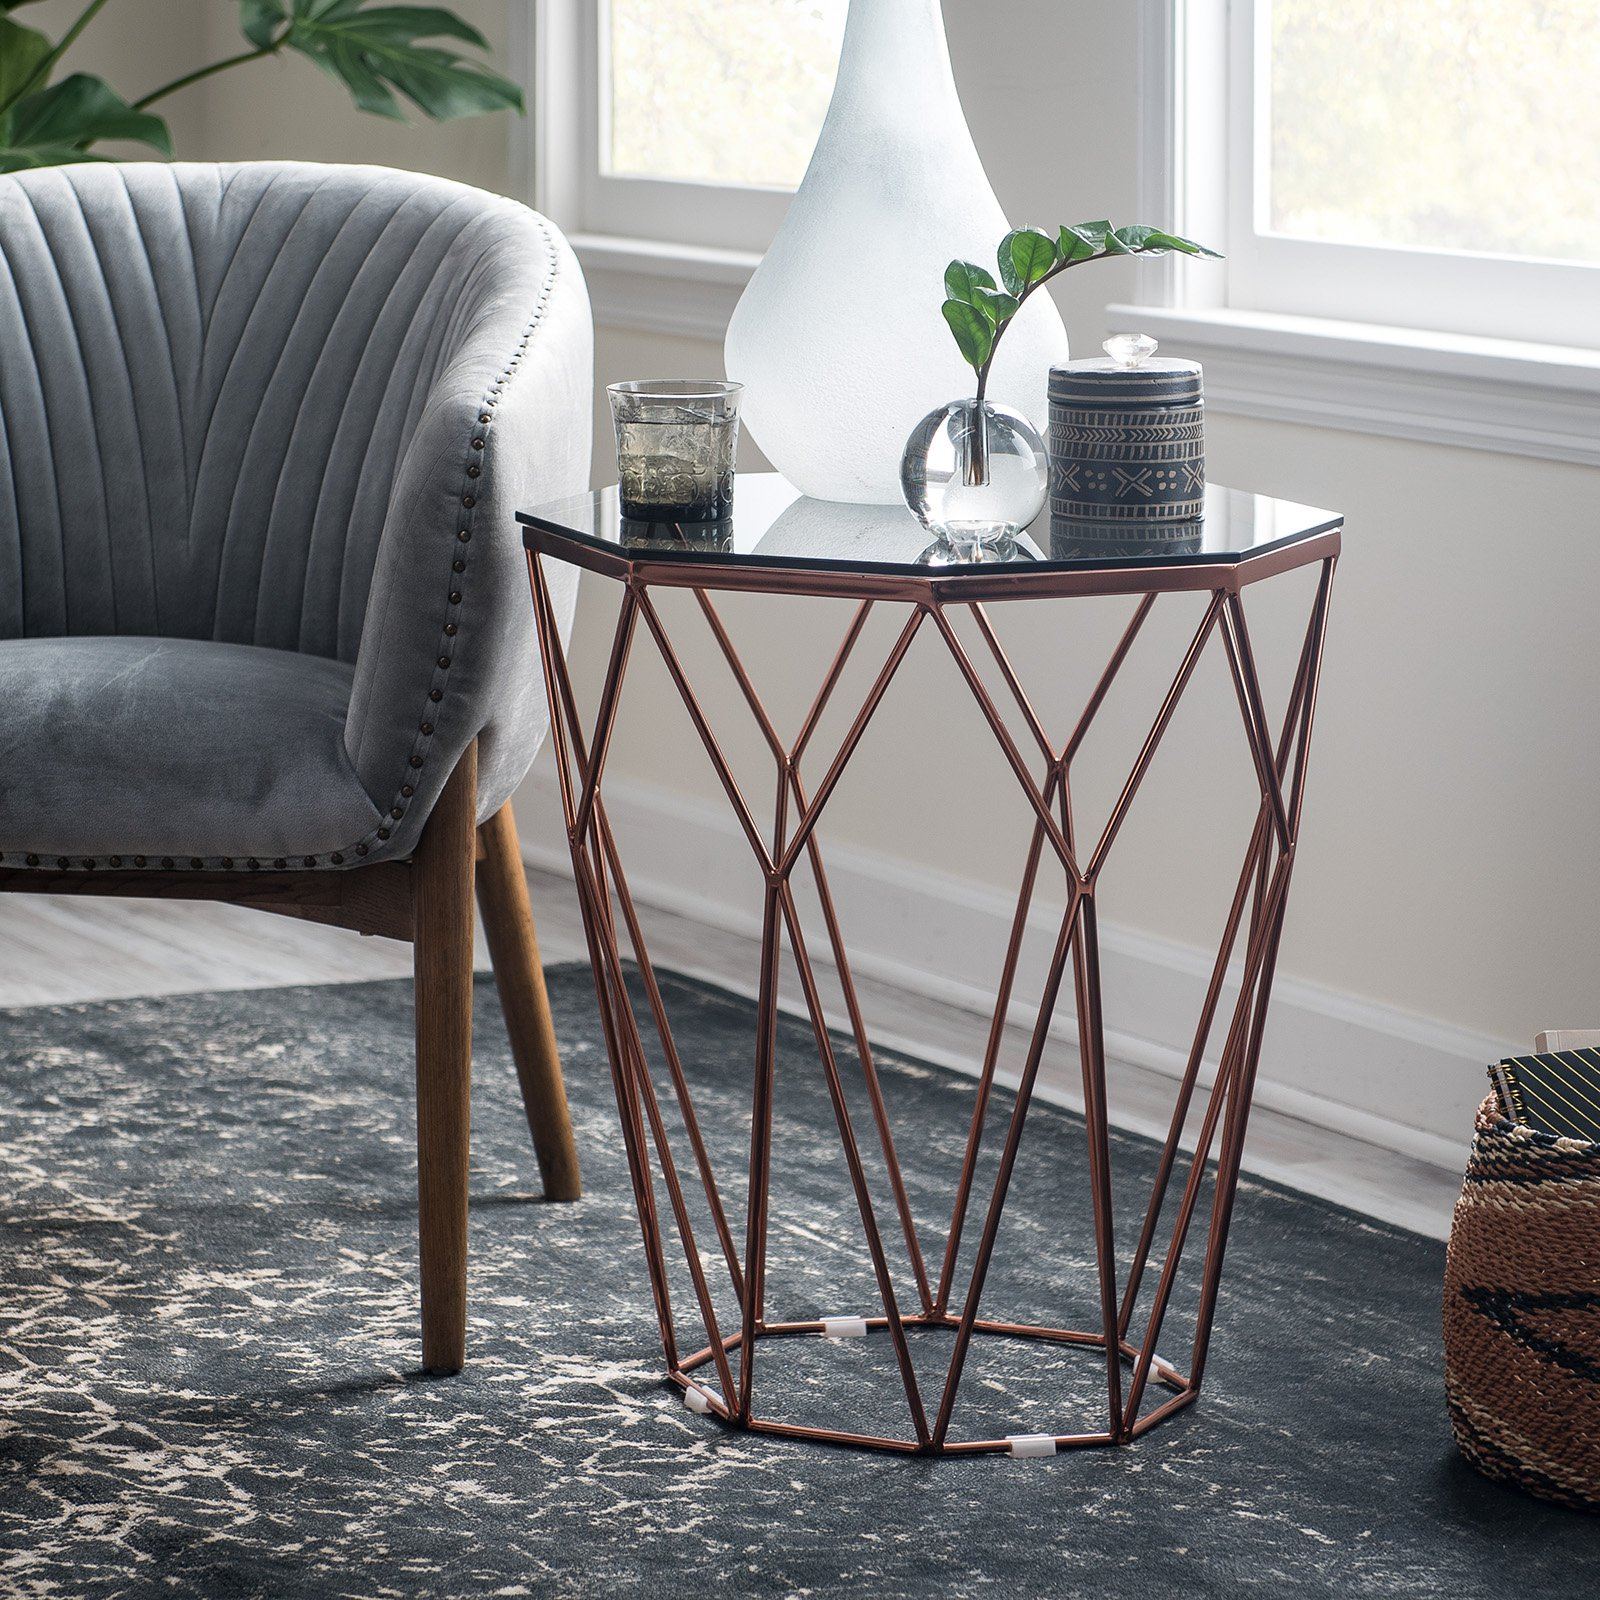 copper accent table metallic zhuxing black threshold product overview console with drawers ikea uttermost samuelle wooden coffee ethan allen maple summer clearance patio furniture